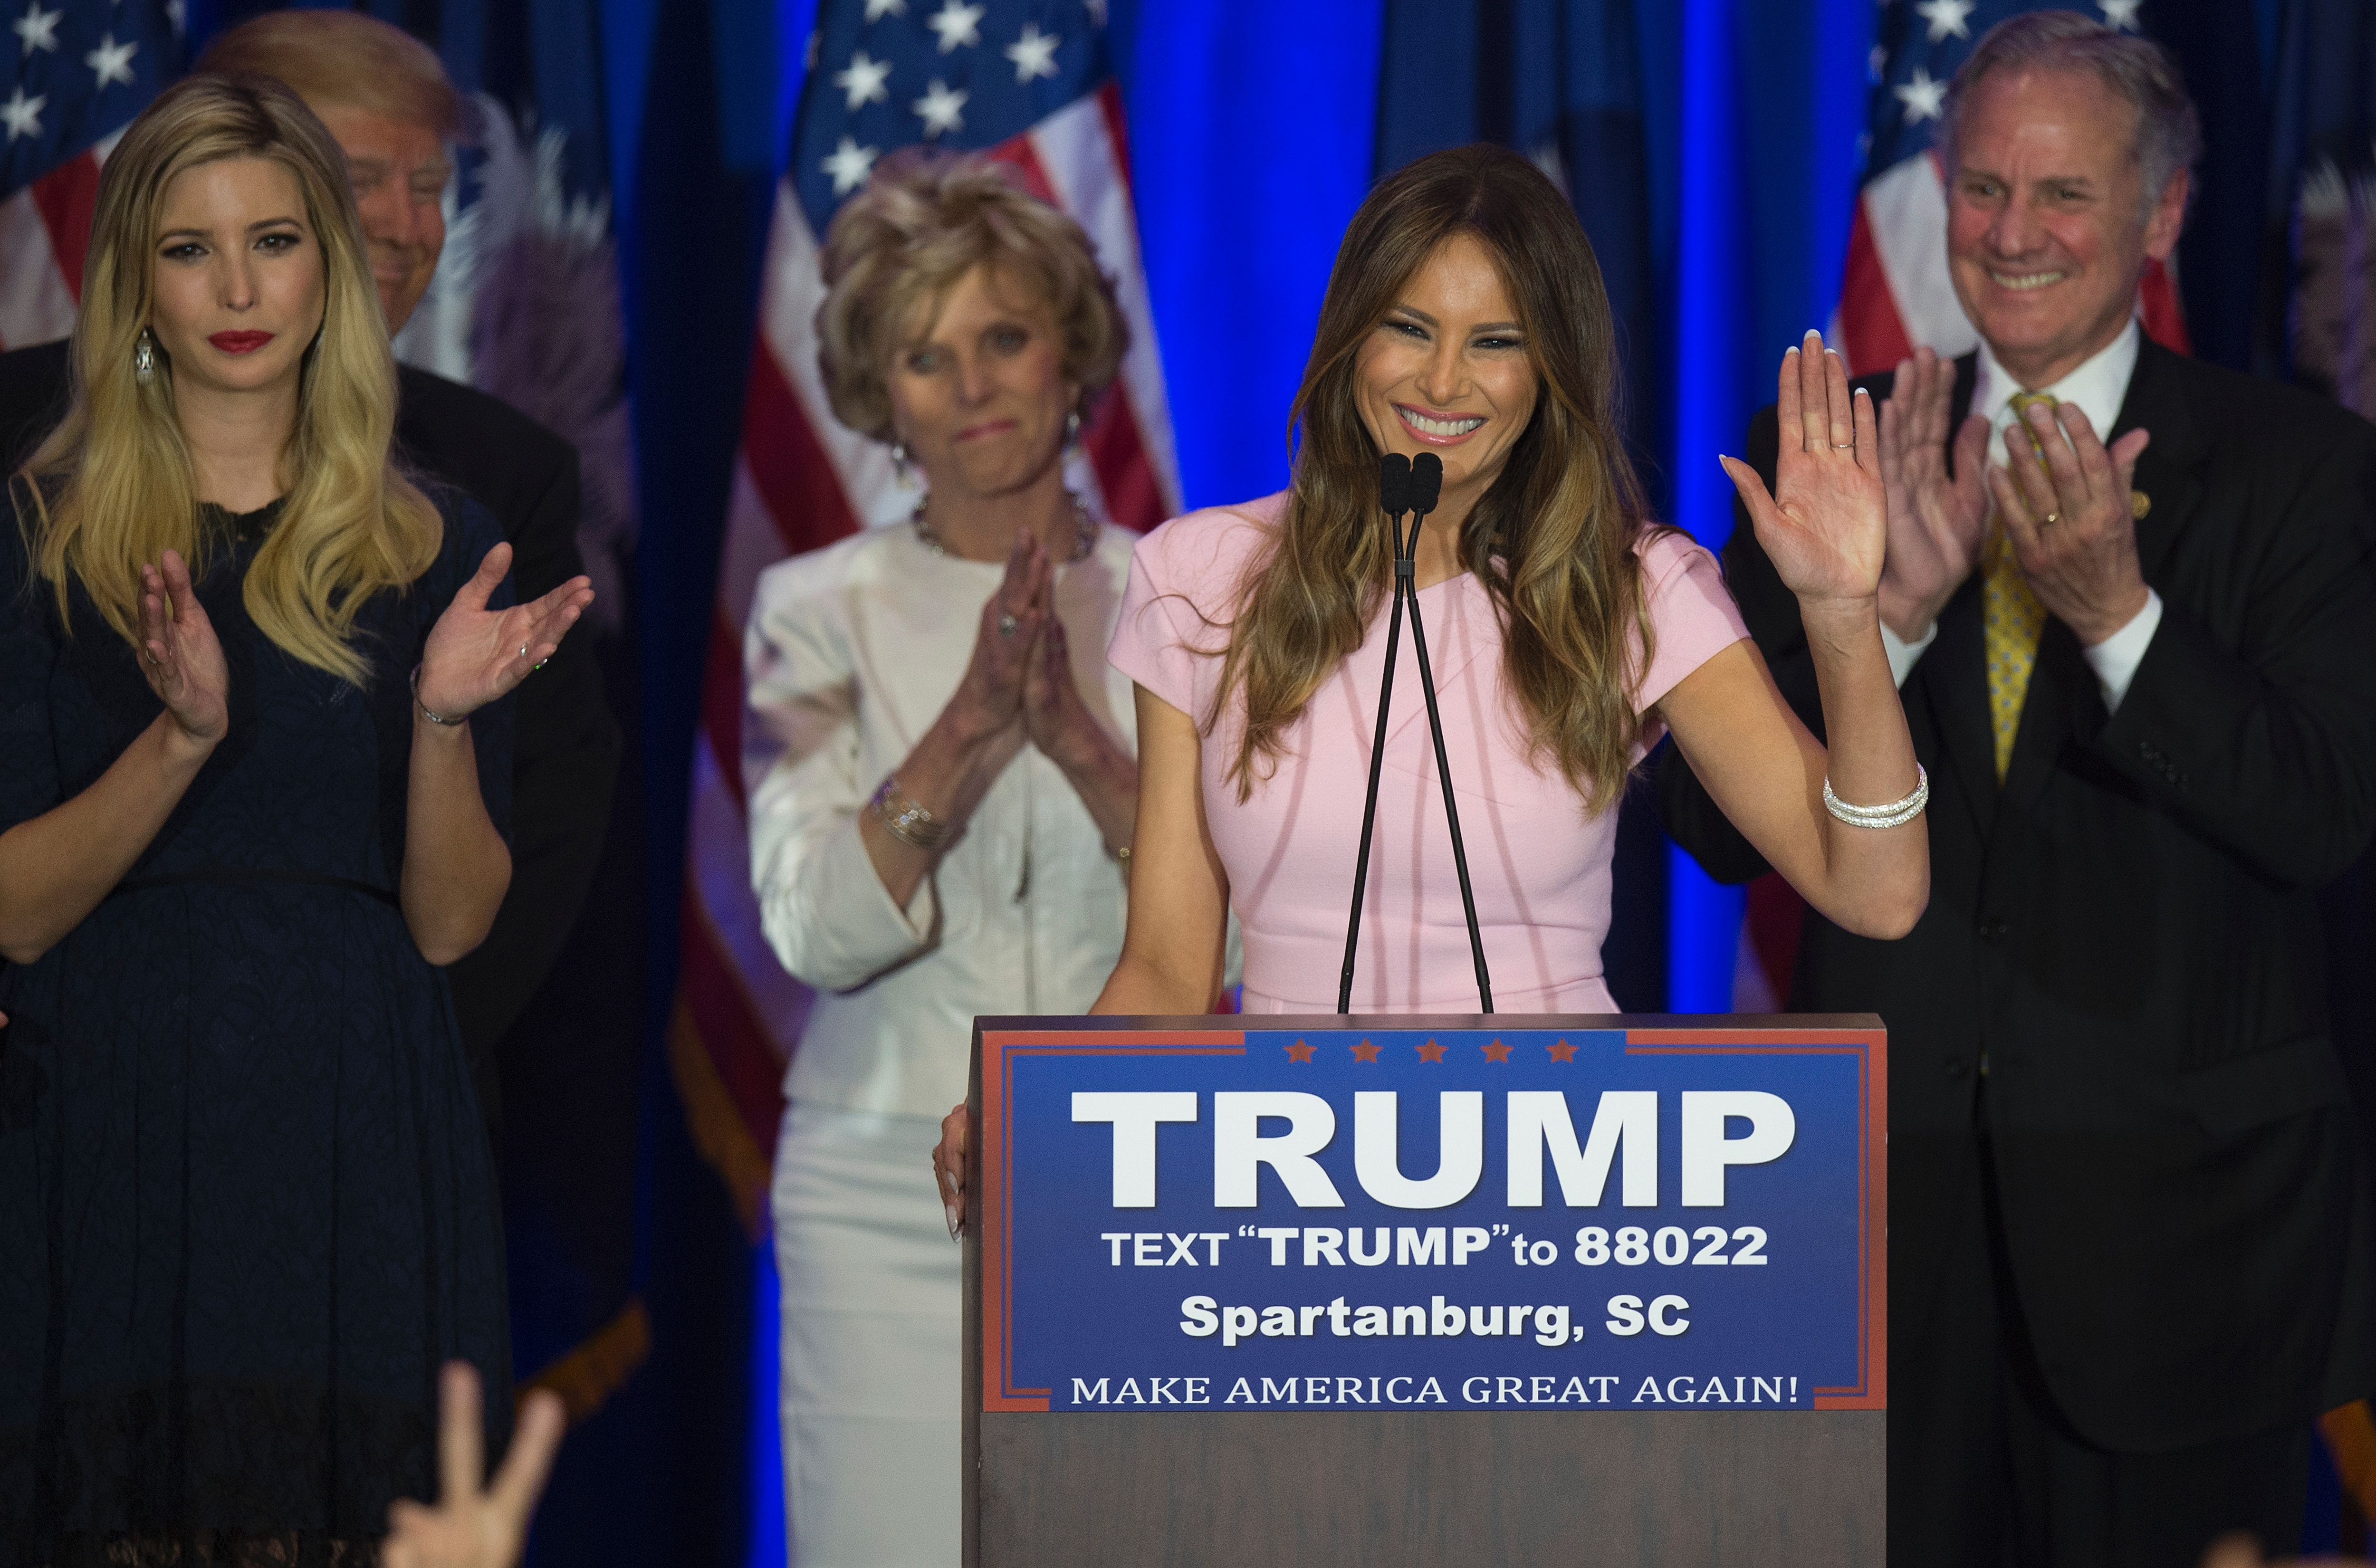 Republican presidential candidate Donald Trump's  wife Melania Trump speaks as they celebrate victory in the South Carolina primary on February 20, 2016 in Spartanburg, South Carolina.